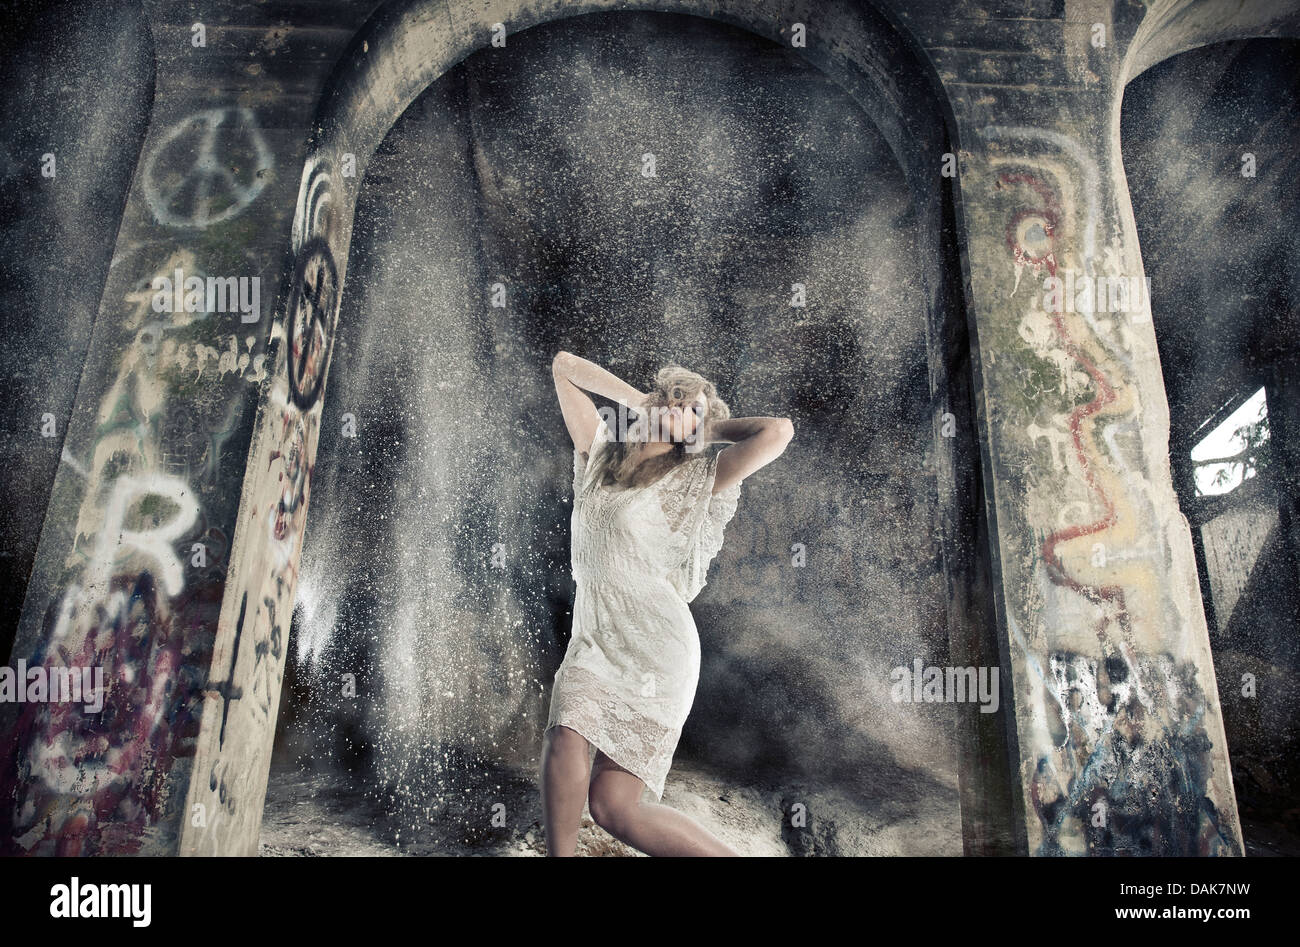 Woman in arch way with dust falling - Stock Image